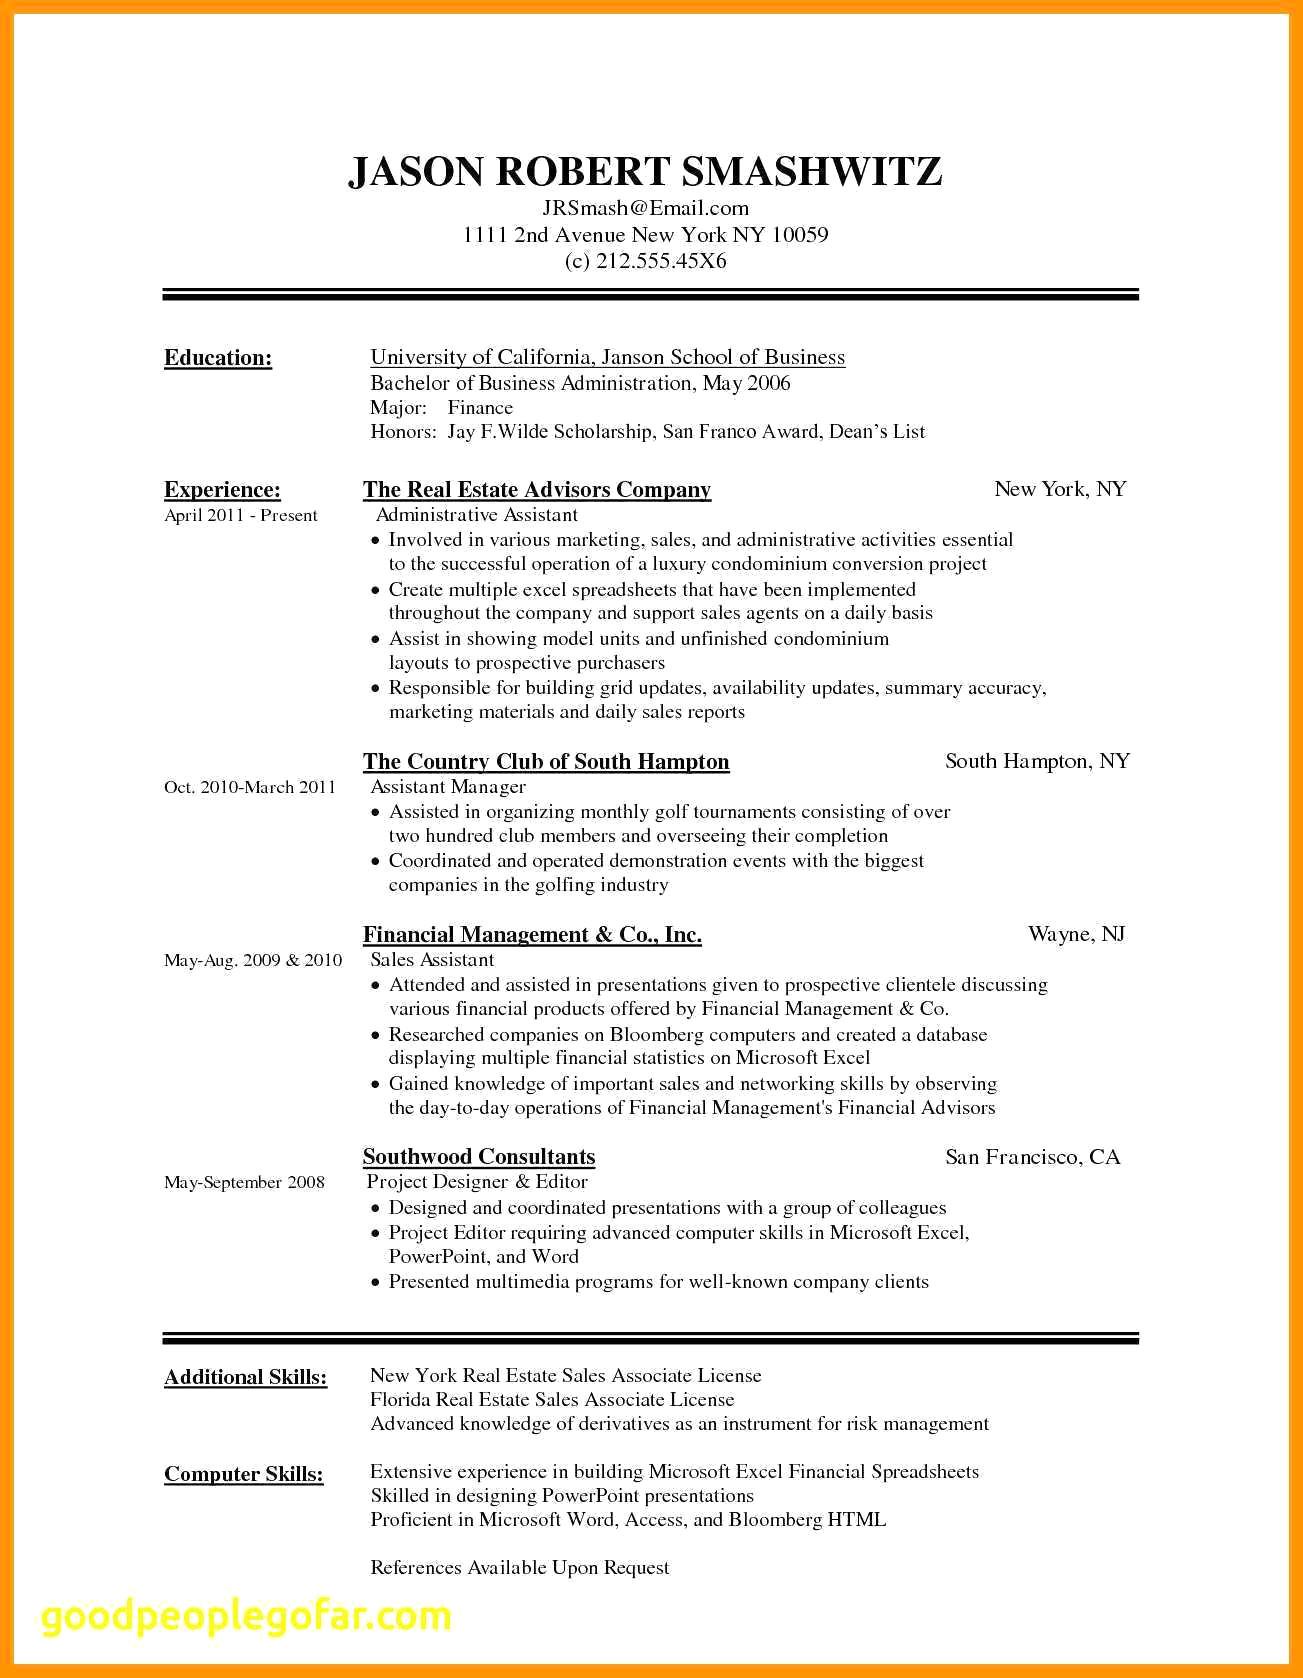 Designer Resume Template - 56 Design Download Resume Templates Word